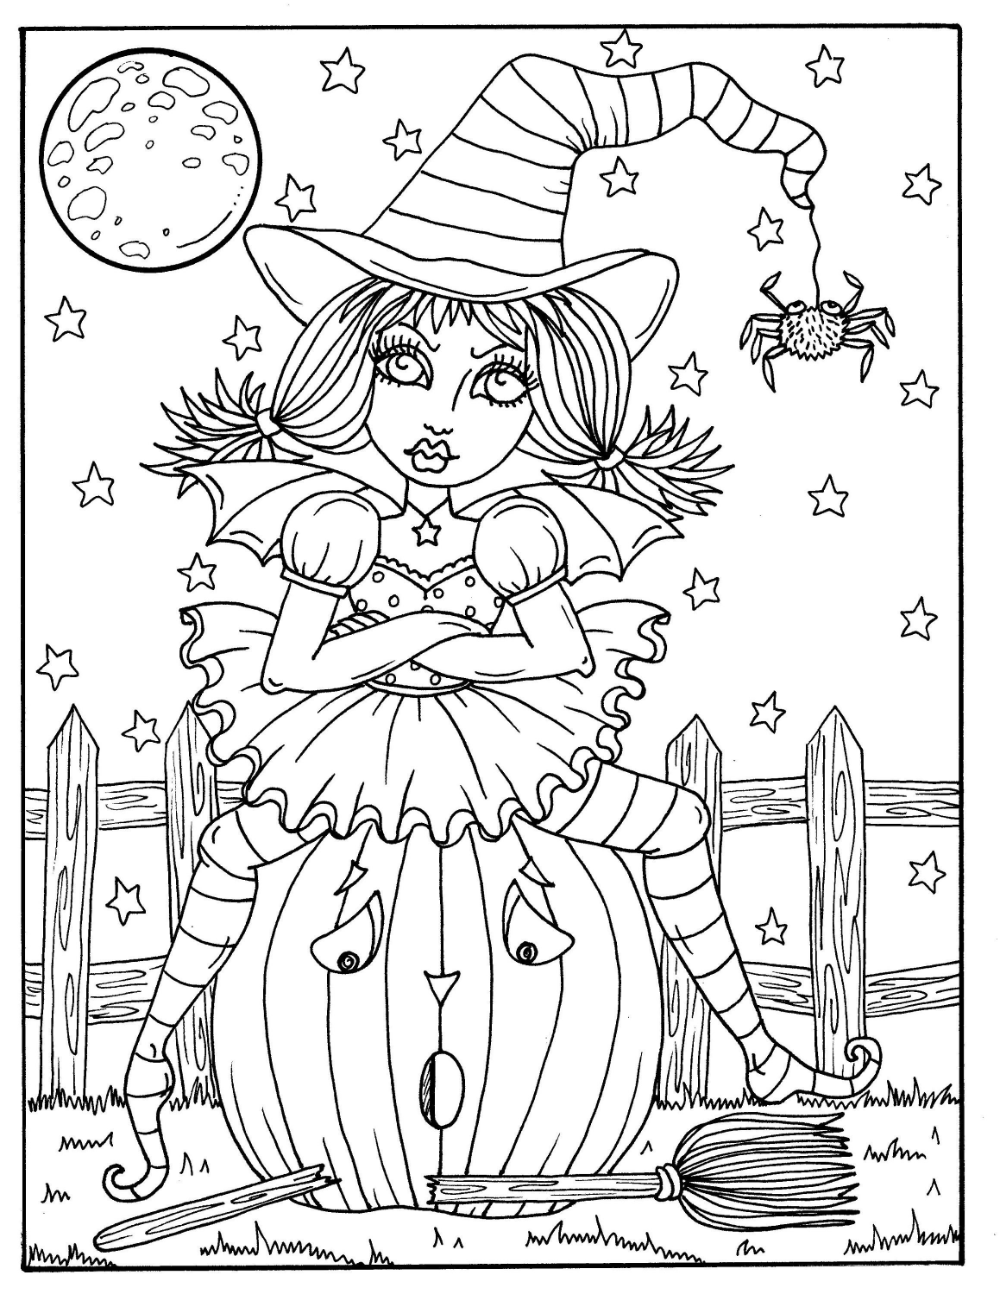 pinshawna bechthold on coloring pages in 2020